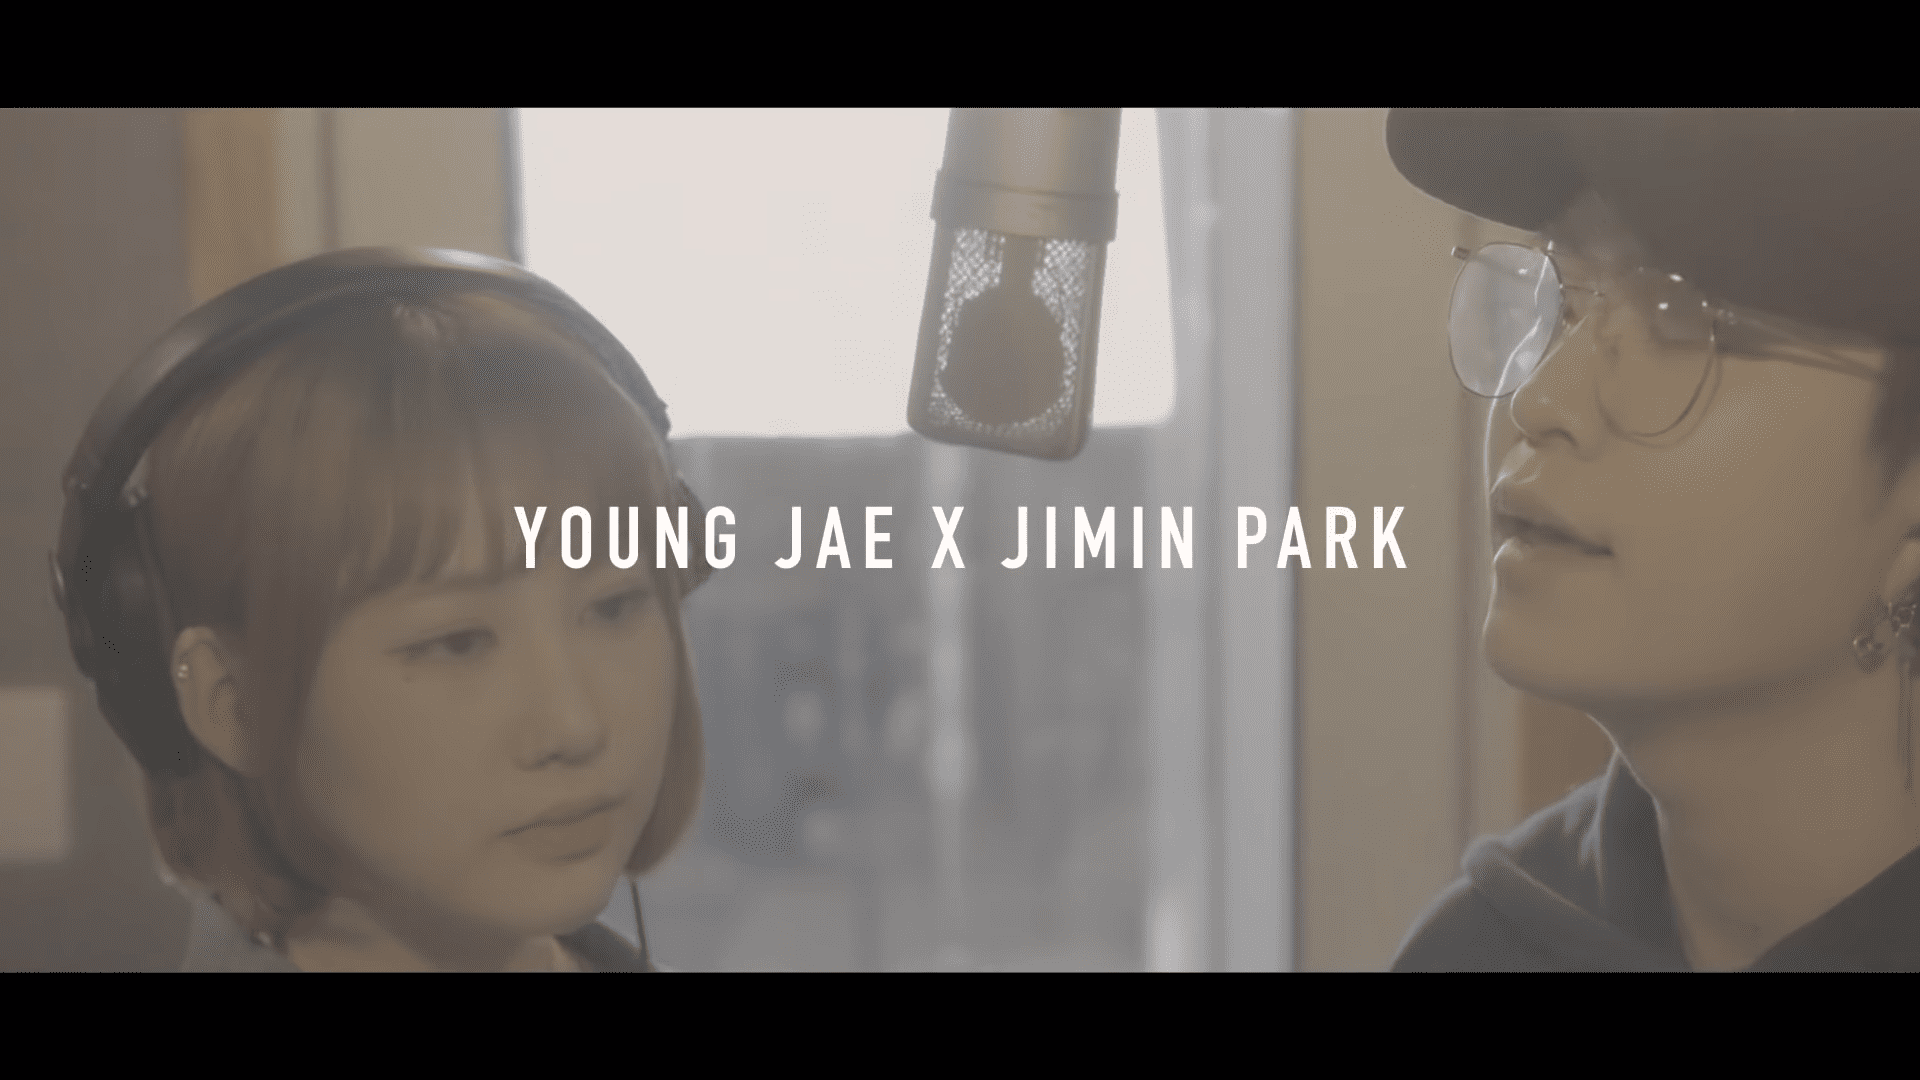 WATCH: GOT7's Youngjae and 15&'s Park Jimin Release MV For Youth Suicide Prevention Campaign